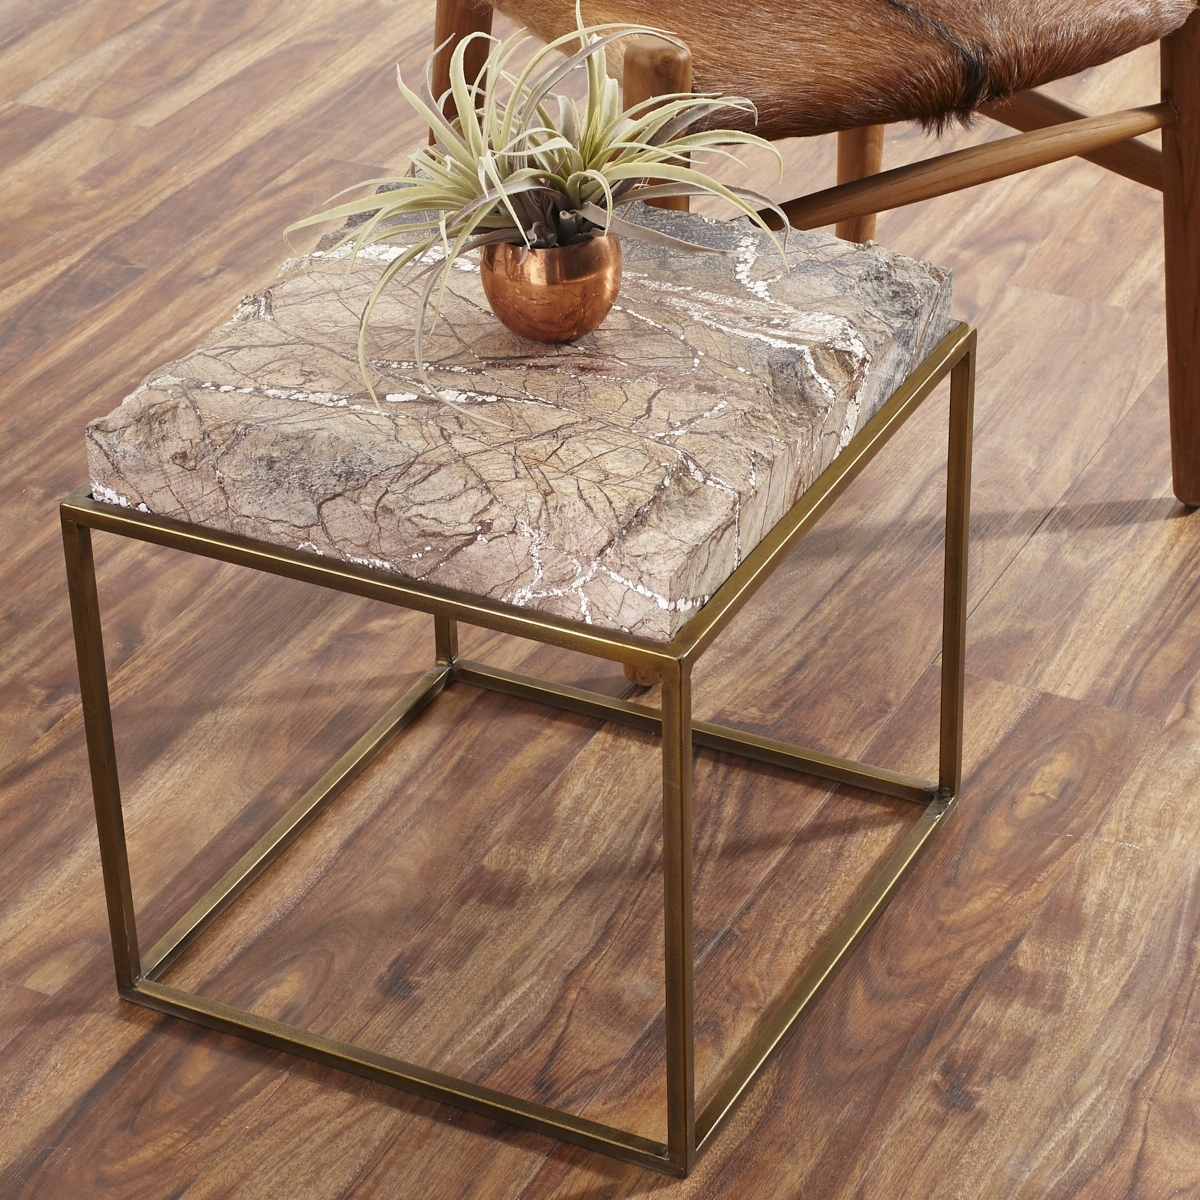 Well Liked Jackson Marble Side Tables Throughout Iron Table With Chiseled Marble Stone Top (View 16 of 20)